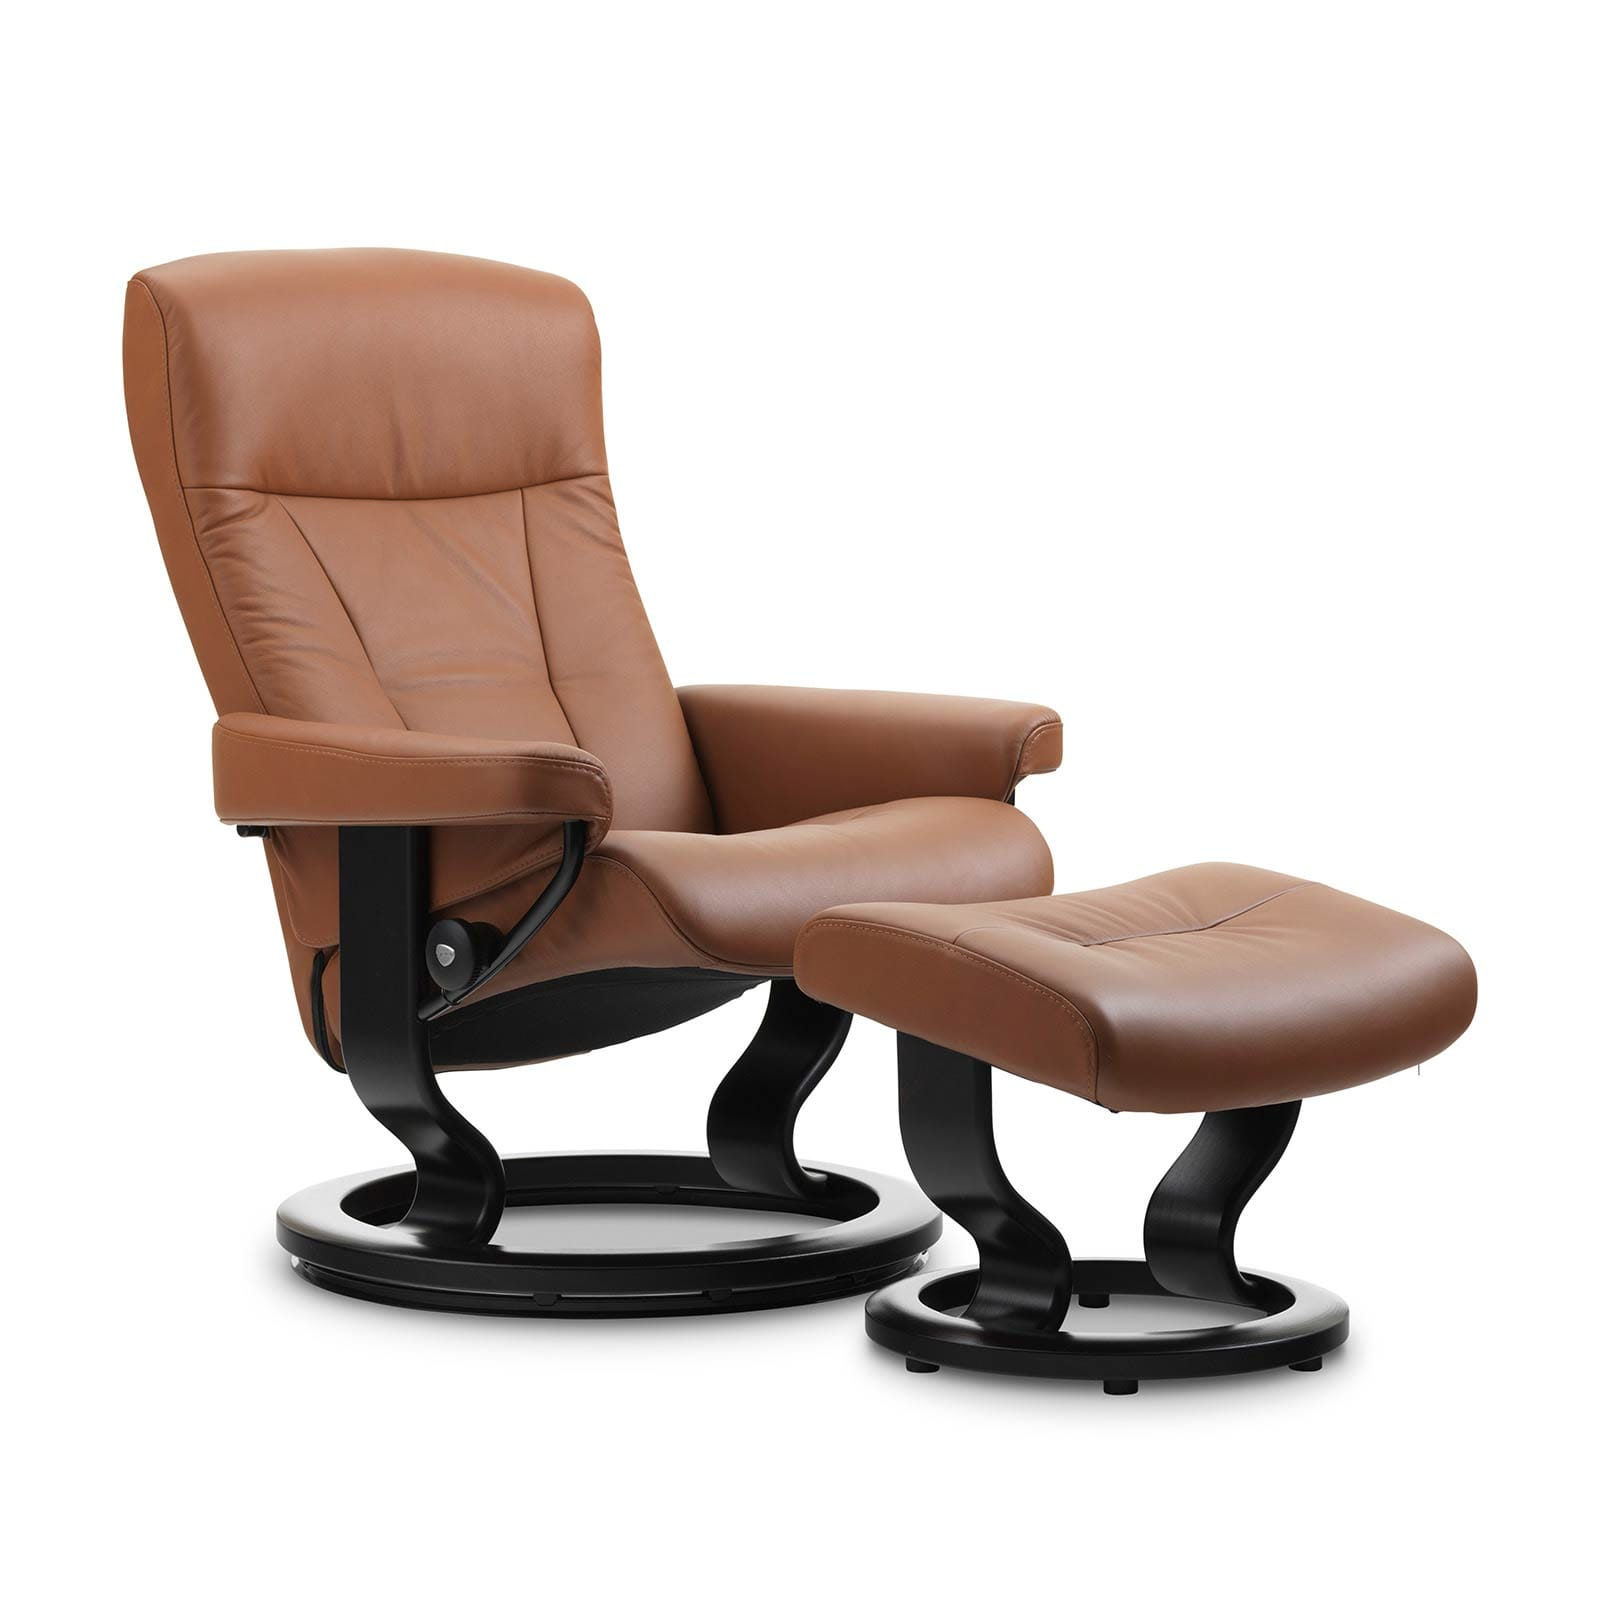 stressless sessel president copper leder paloma. Black Bedroom Furniture Sets. Home Design Ideas